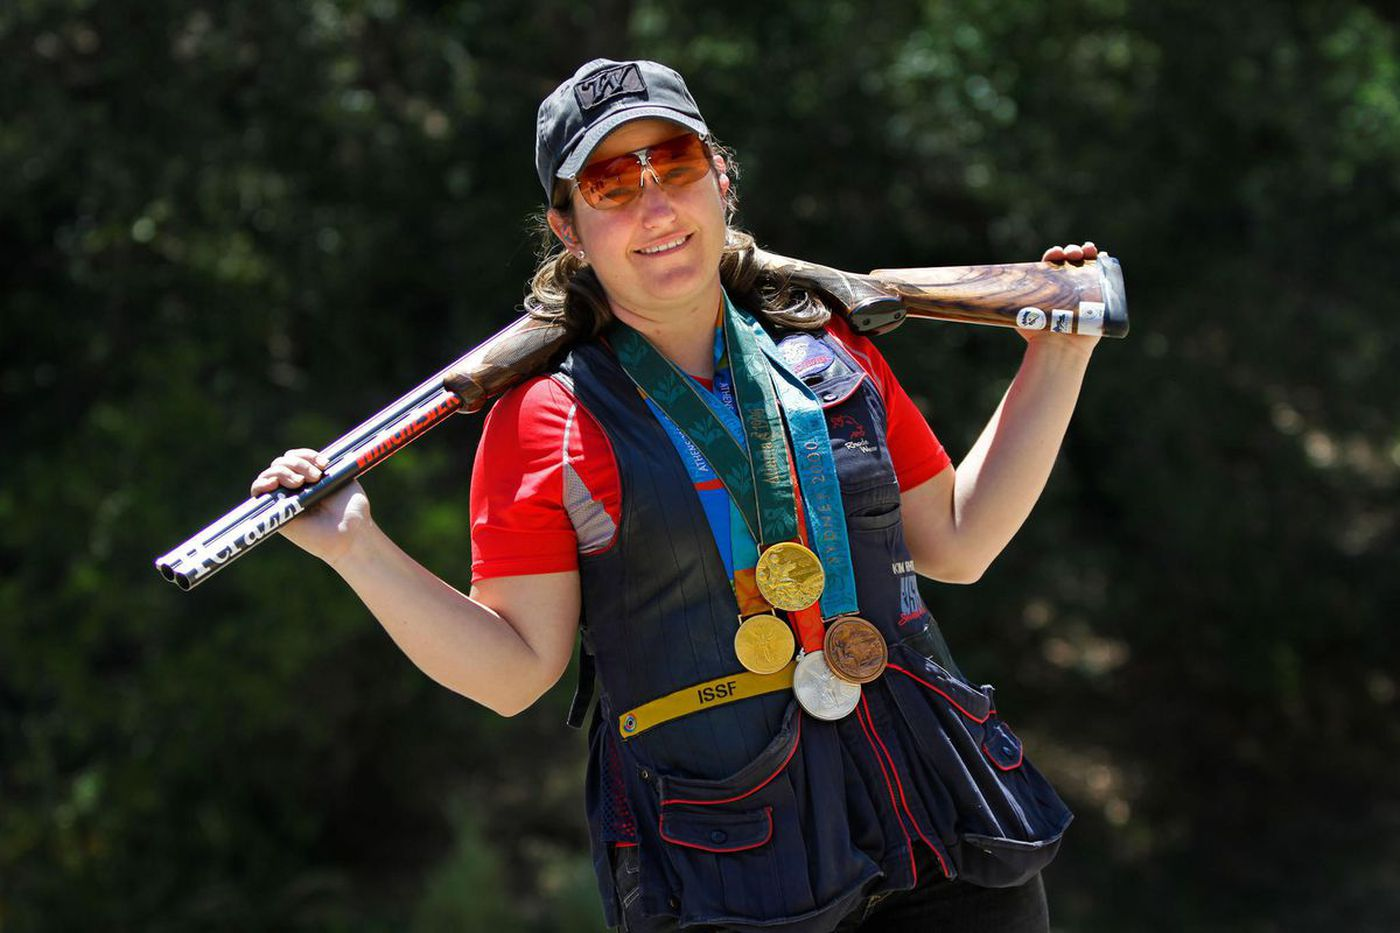 Olympian Kim Rhode is a plaintiff in a lawsuit filed by the NRA and its state affiliate against California. (Credit: Jay L. Clendenin / Los Angeles Times)